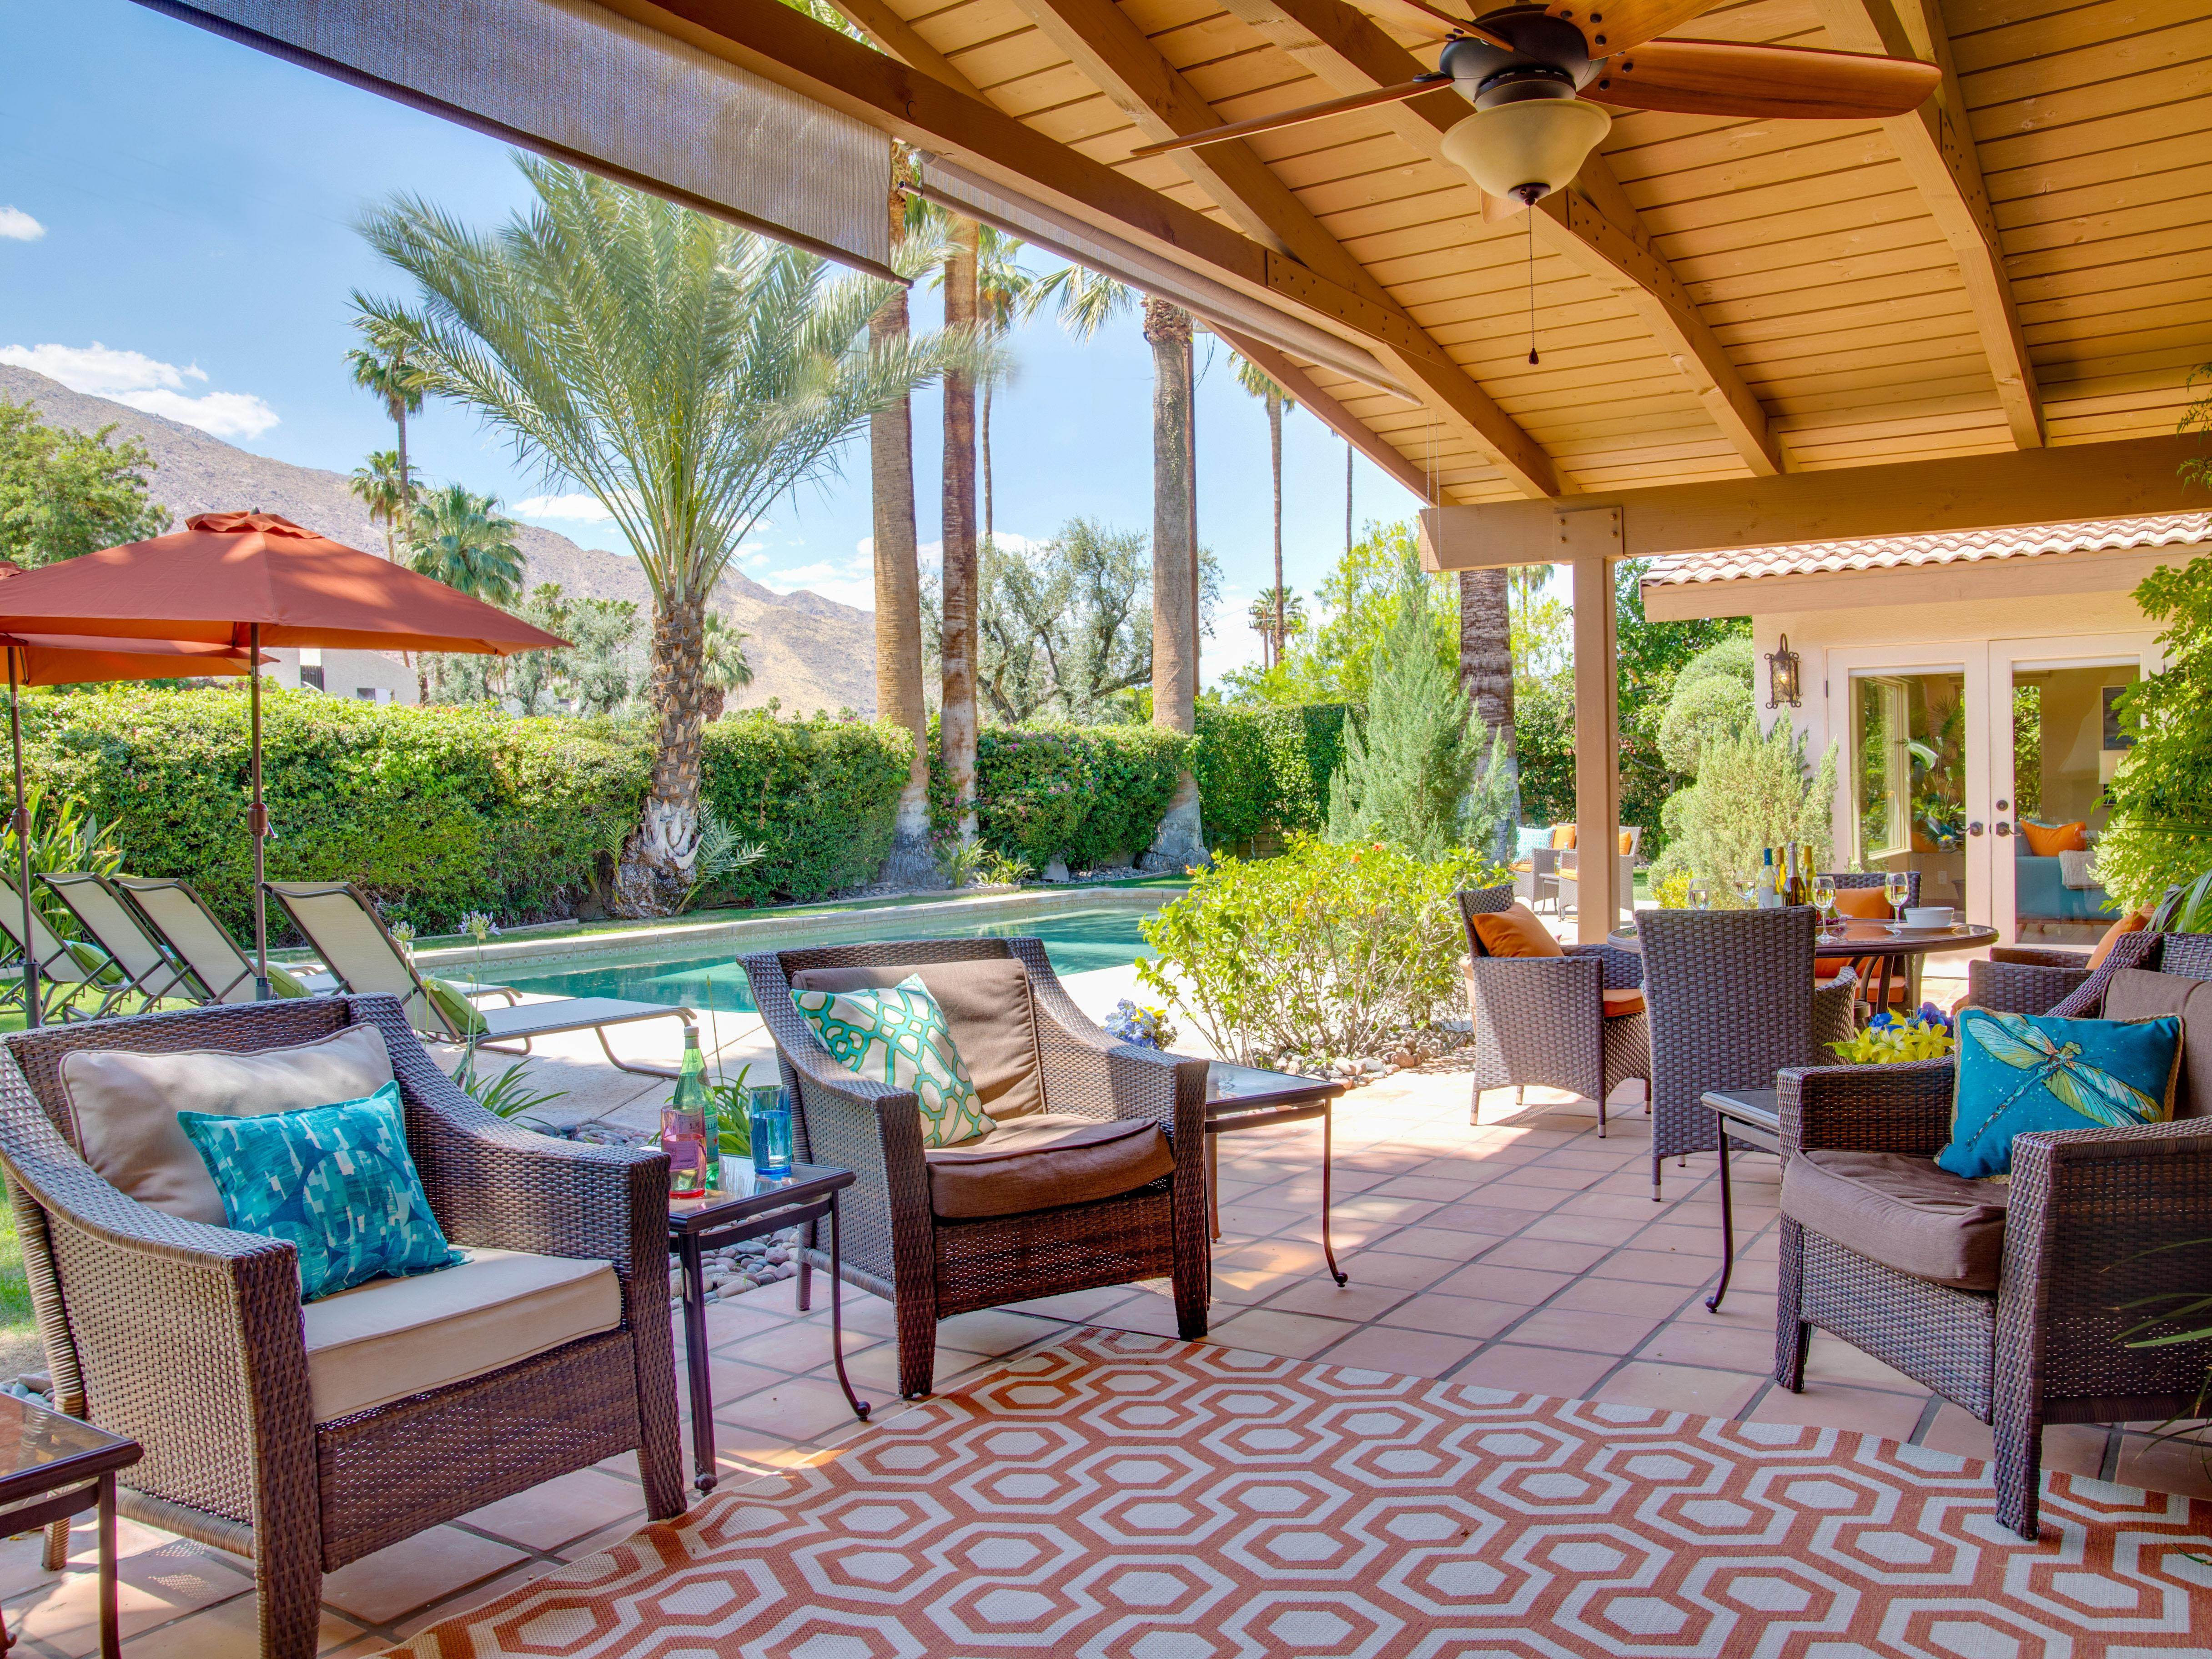 Property Image 2 - Open, Bright Pool Home in Deepwell near Palm Canyon Dr